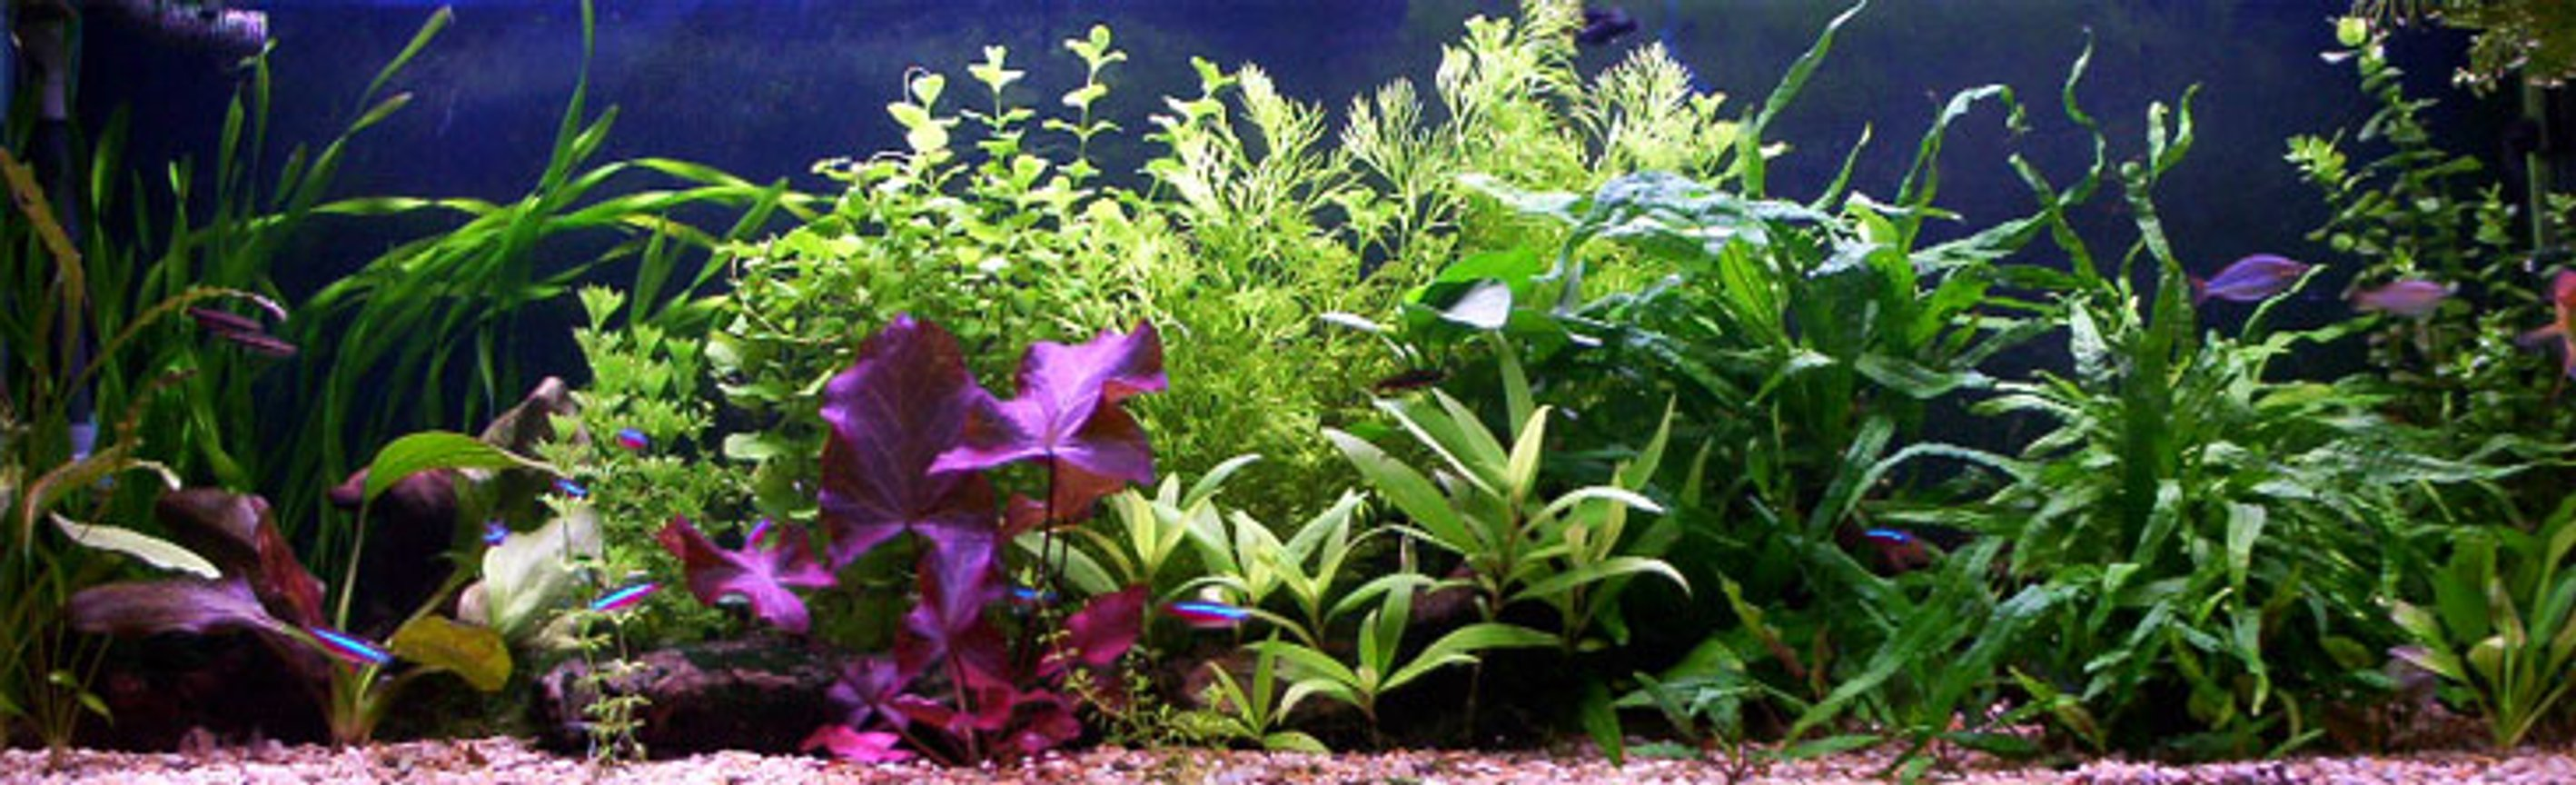 planted tank (mostly live plants and fish) - i lick but